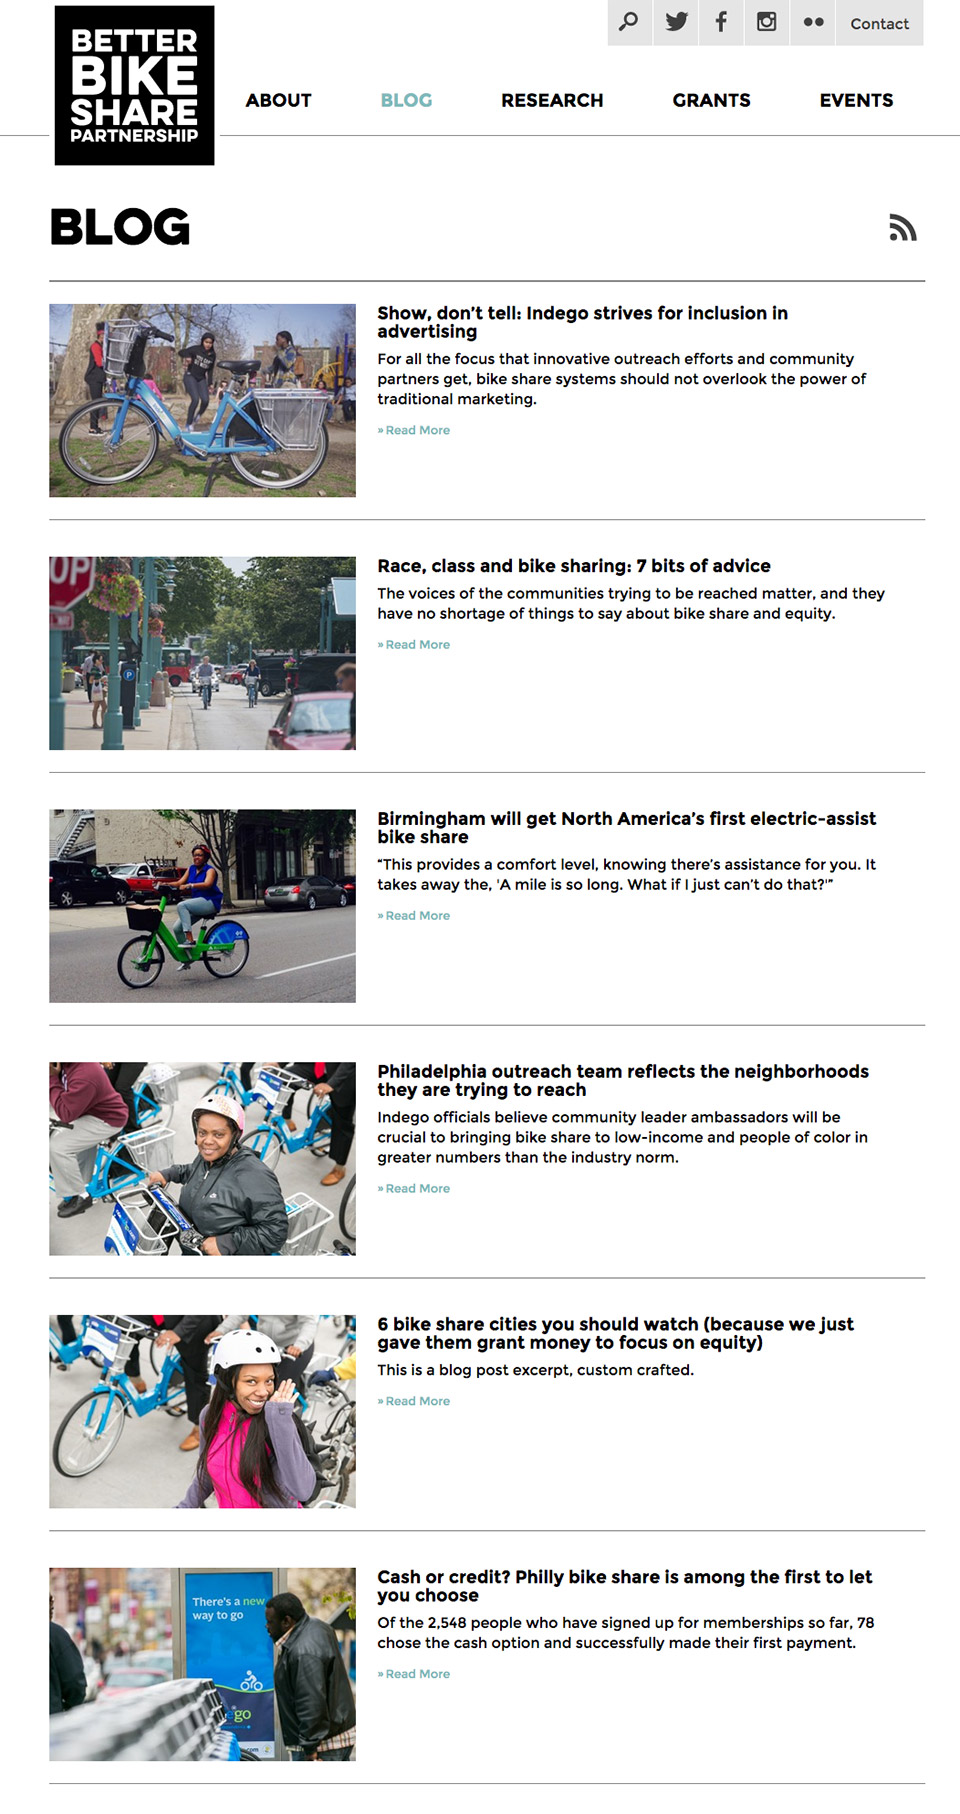 Better Bike Share Partnership: Better Bike Share Blog Platform